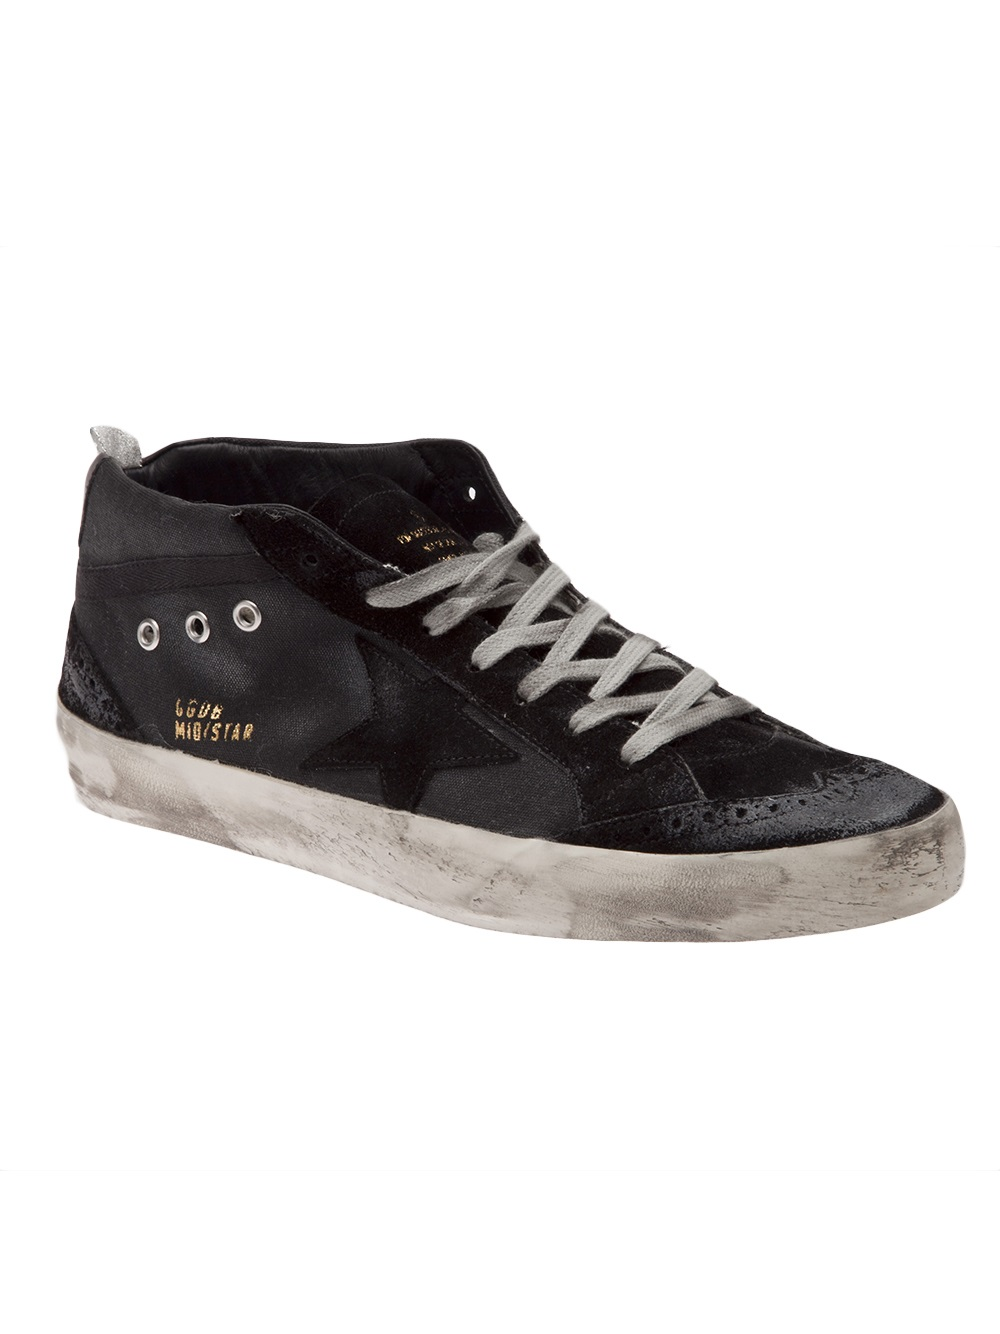 Lyst - Golden Goose Deluxe Brand Midstar Shoe in Black for Men